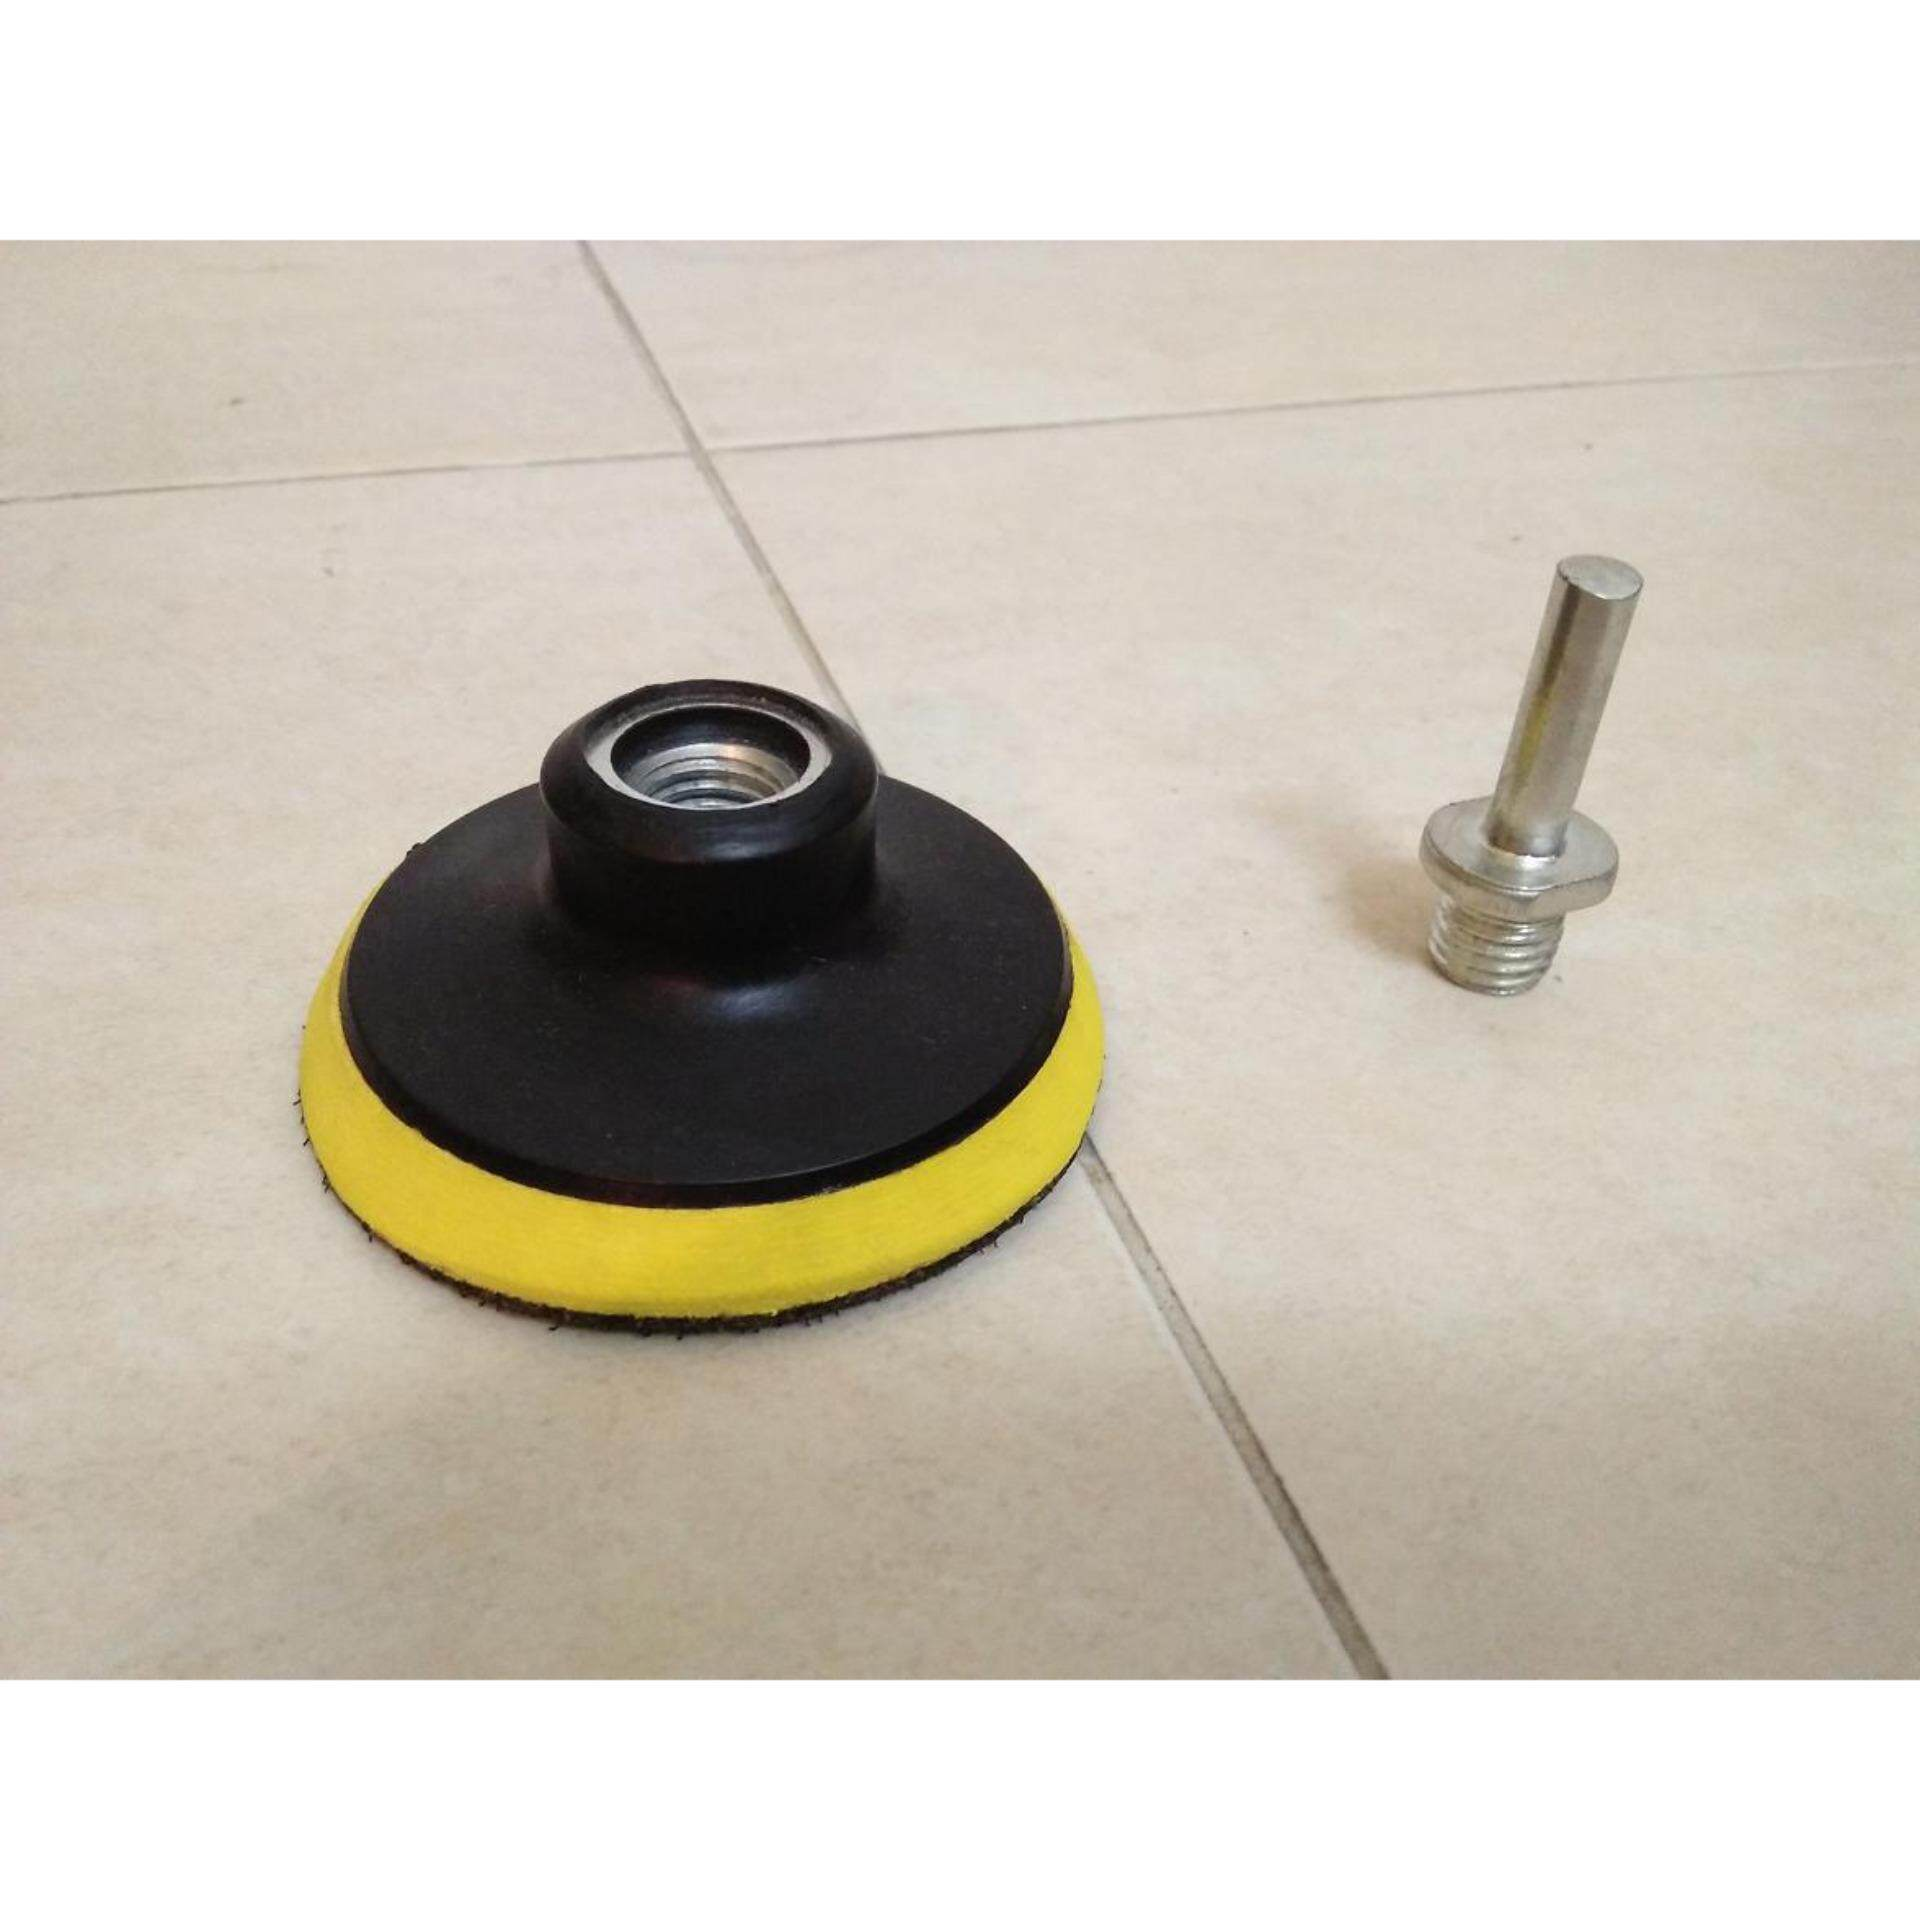 3 inch backing disc and stick for driller polisher(Convert your driller into polisher)